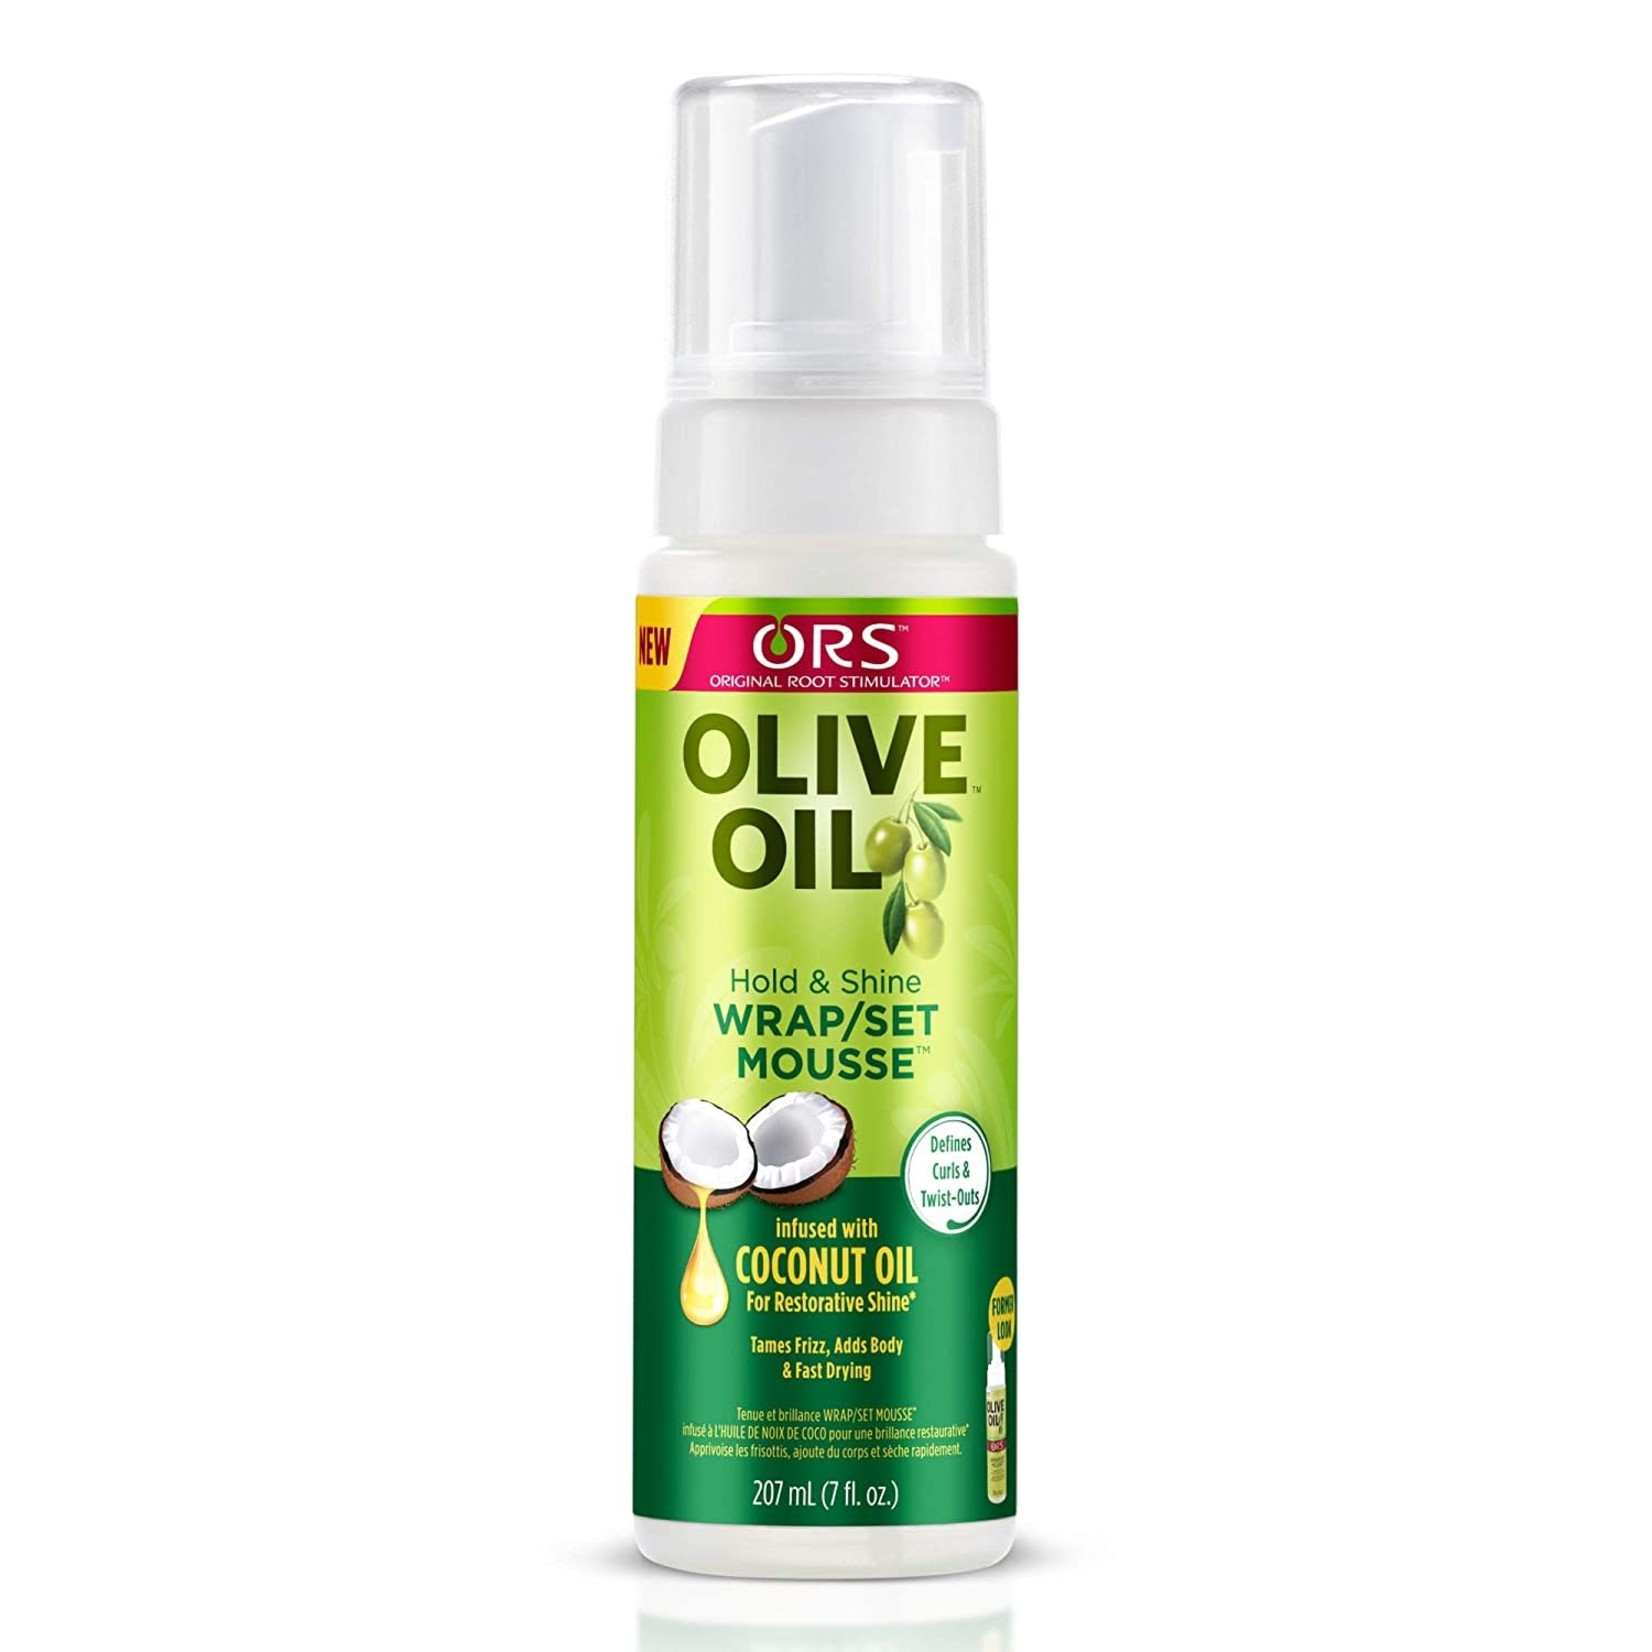 ORS ORGANIC ROOT OLIVE OIL WRAP/SET MOUSSE